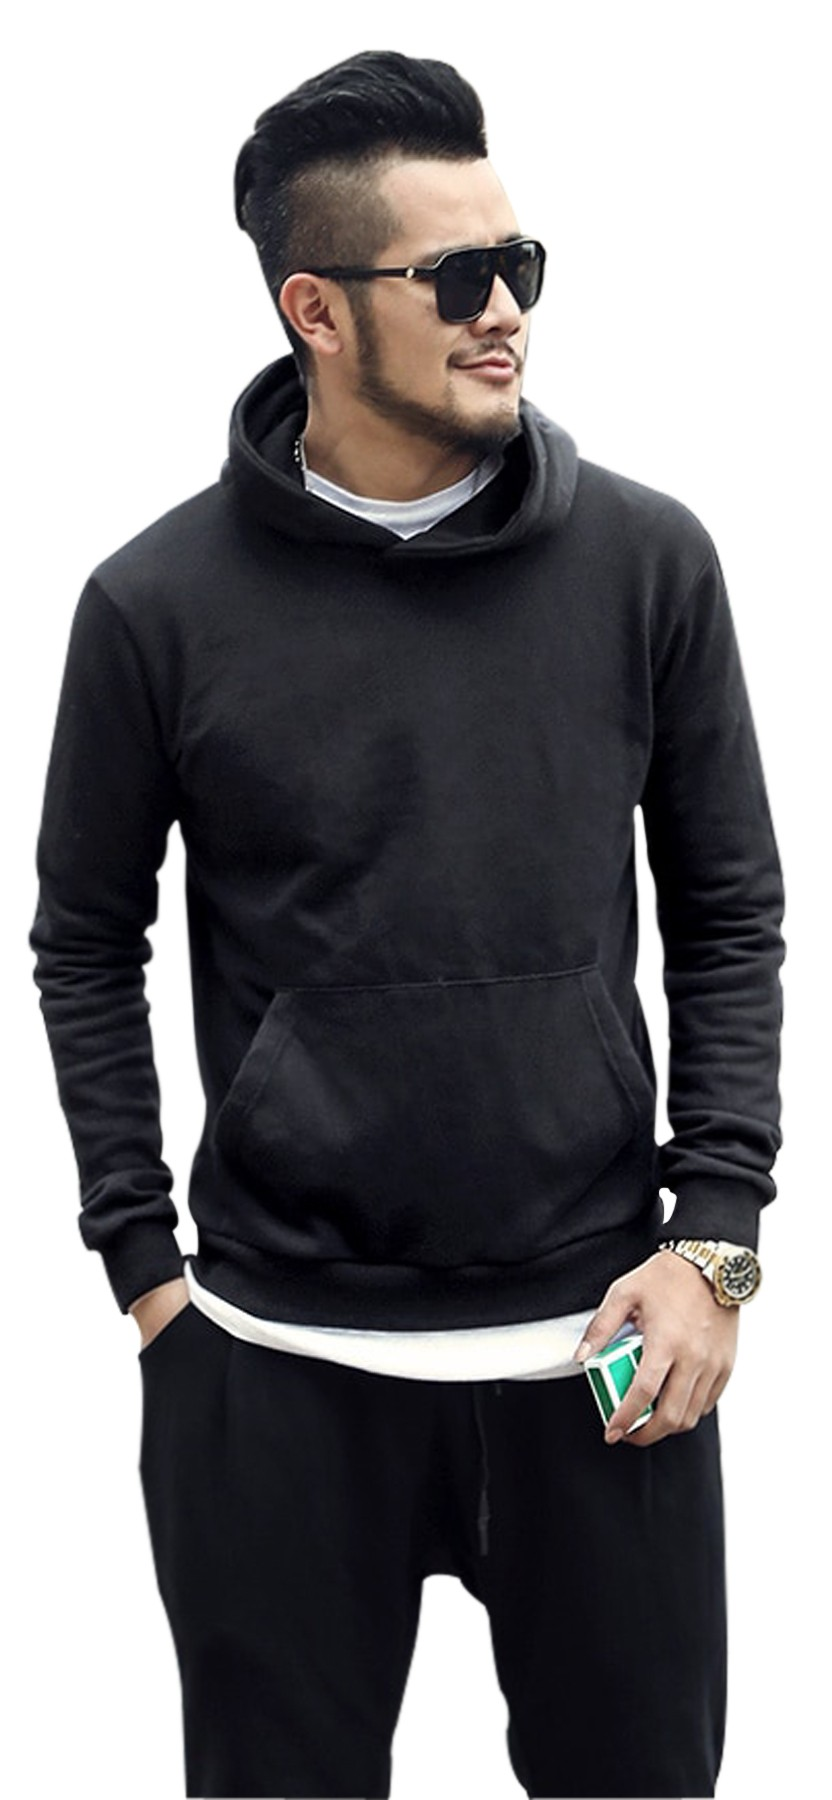 Unisex round neck Hoodie 2 pockets Full sleeves with rib